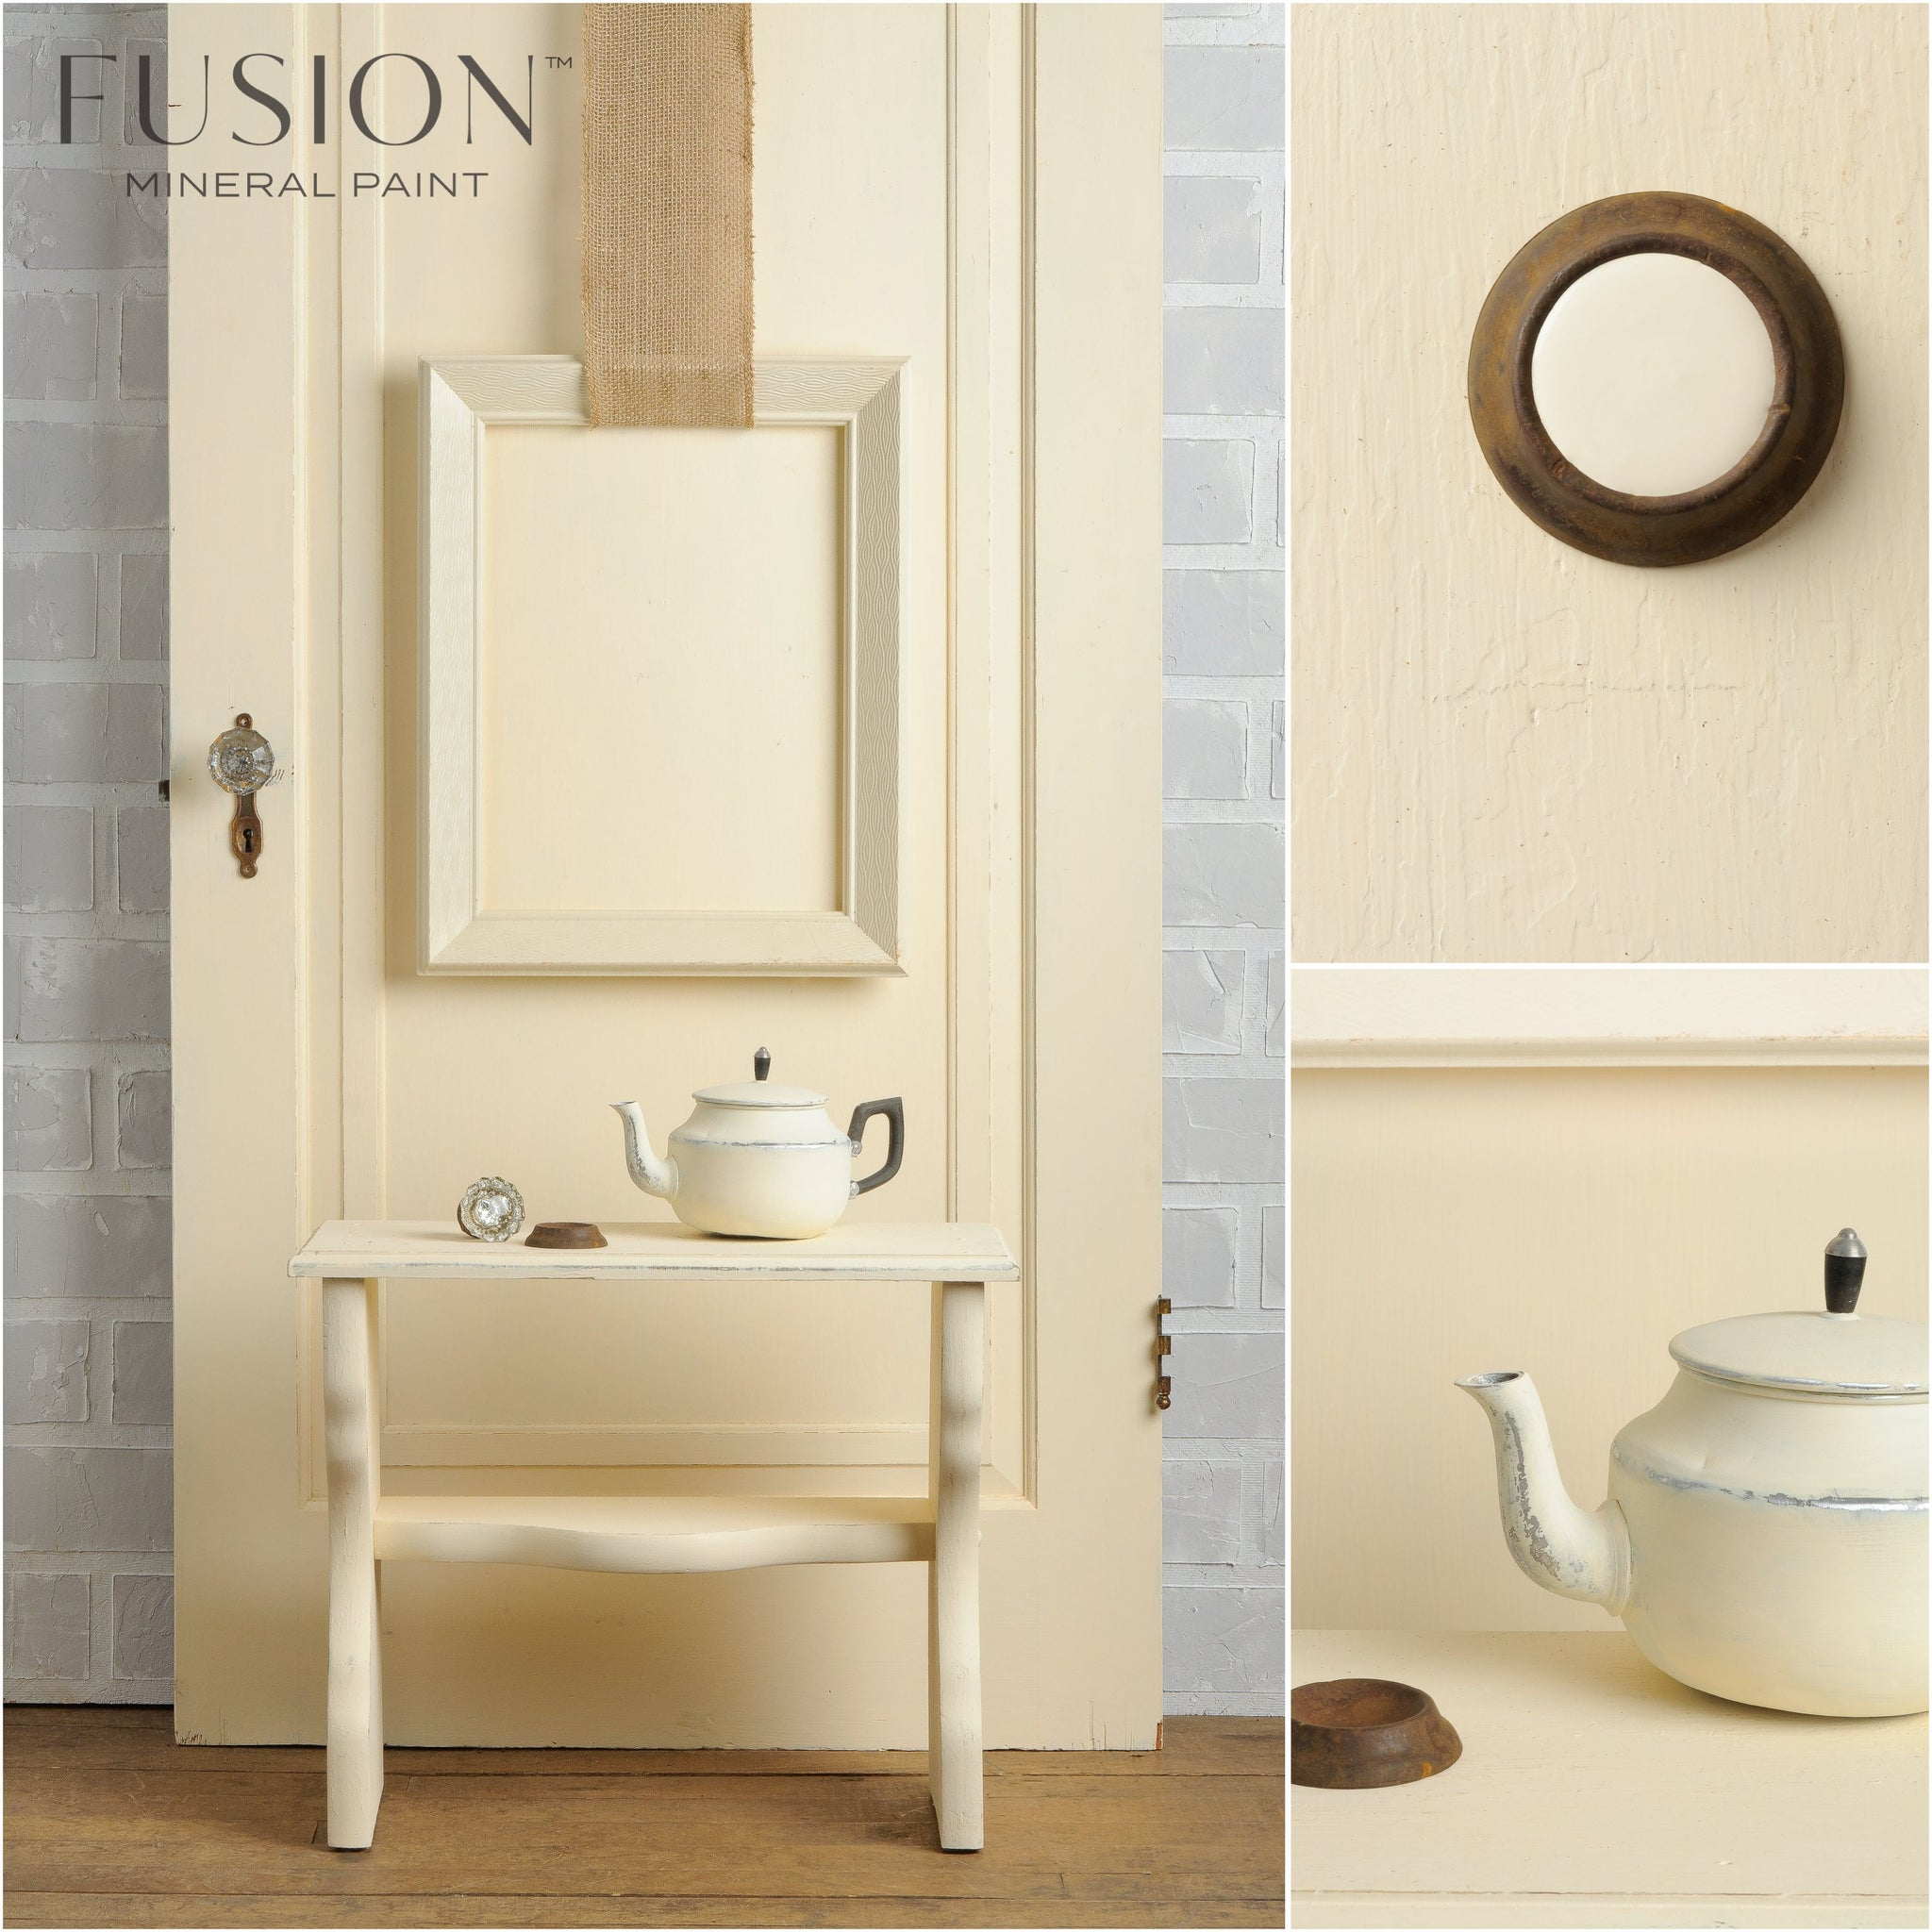 Limestone Fusion Mineral Paint